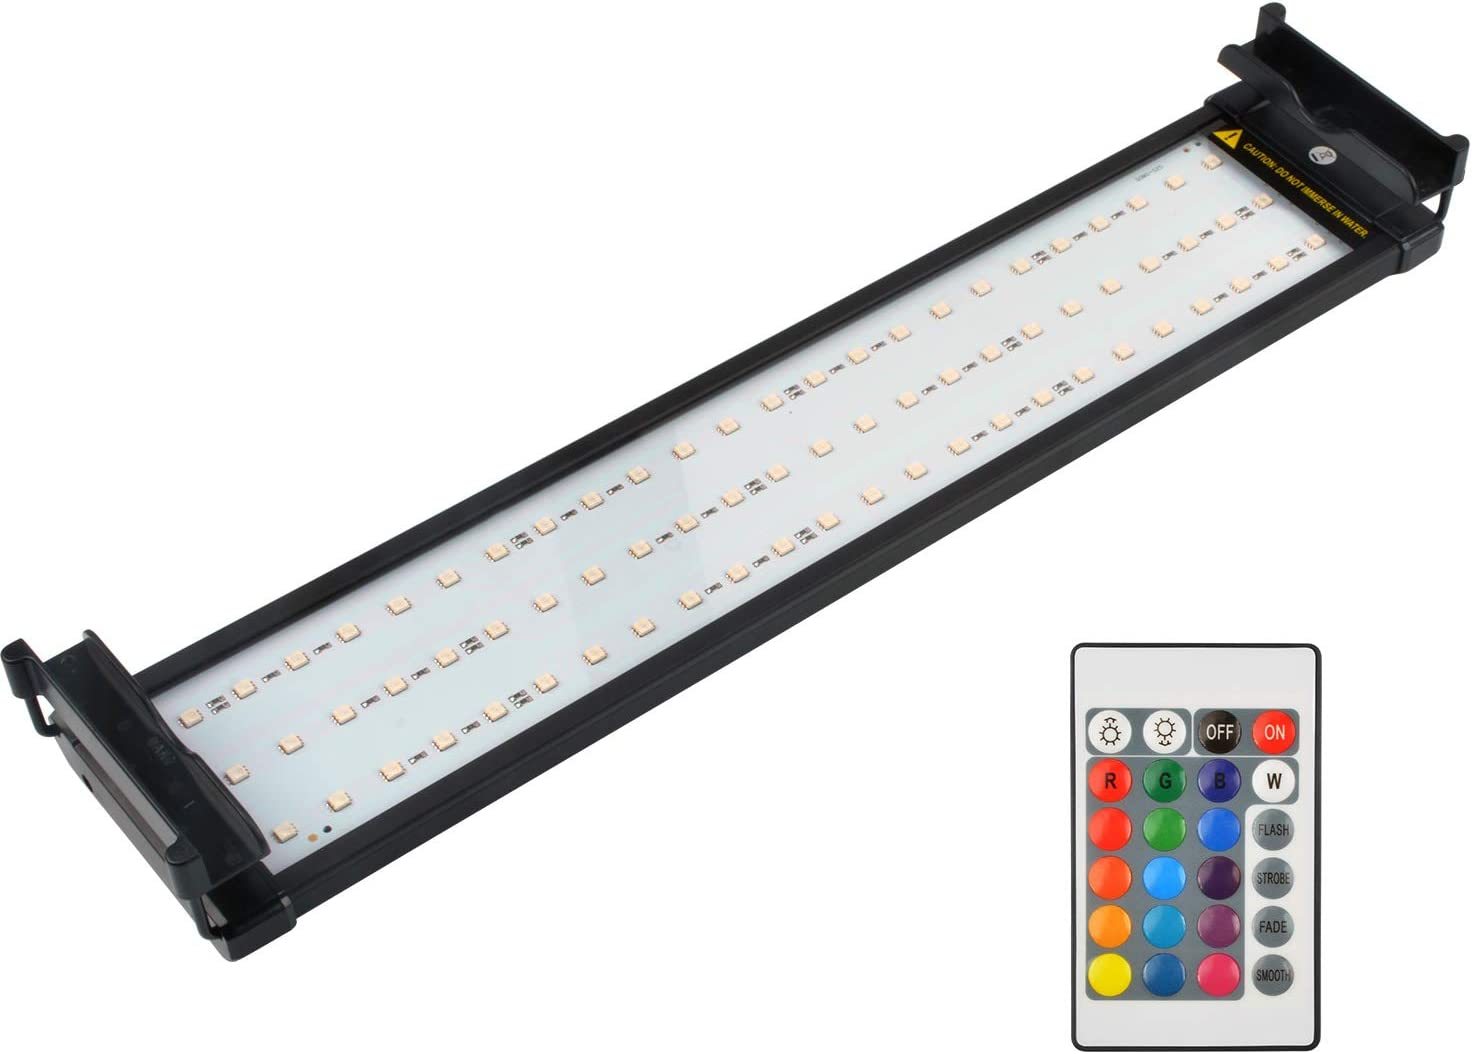 14 Watts NICREW Aquarium LED Light Dimmable RGB Fish Tank Light with Remote for Freshwater 20 to 27-Inch